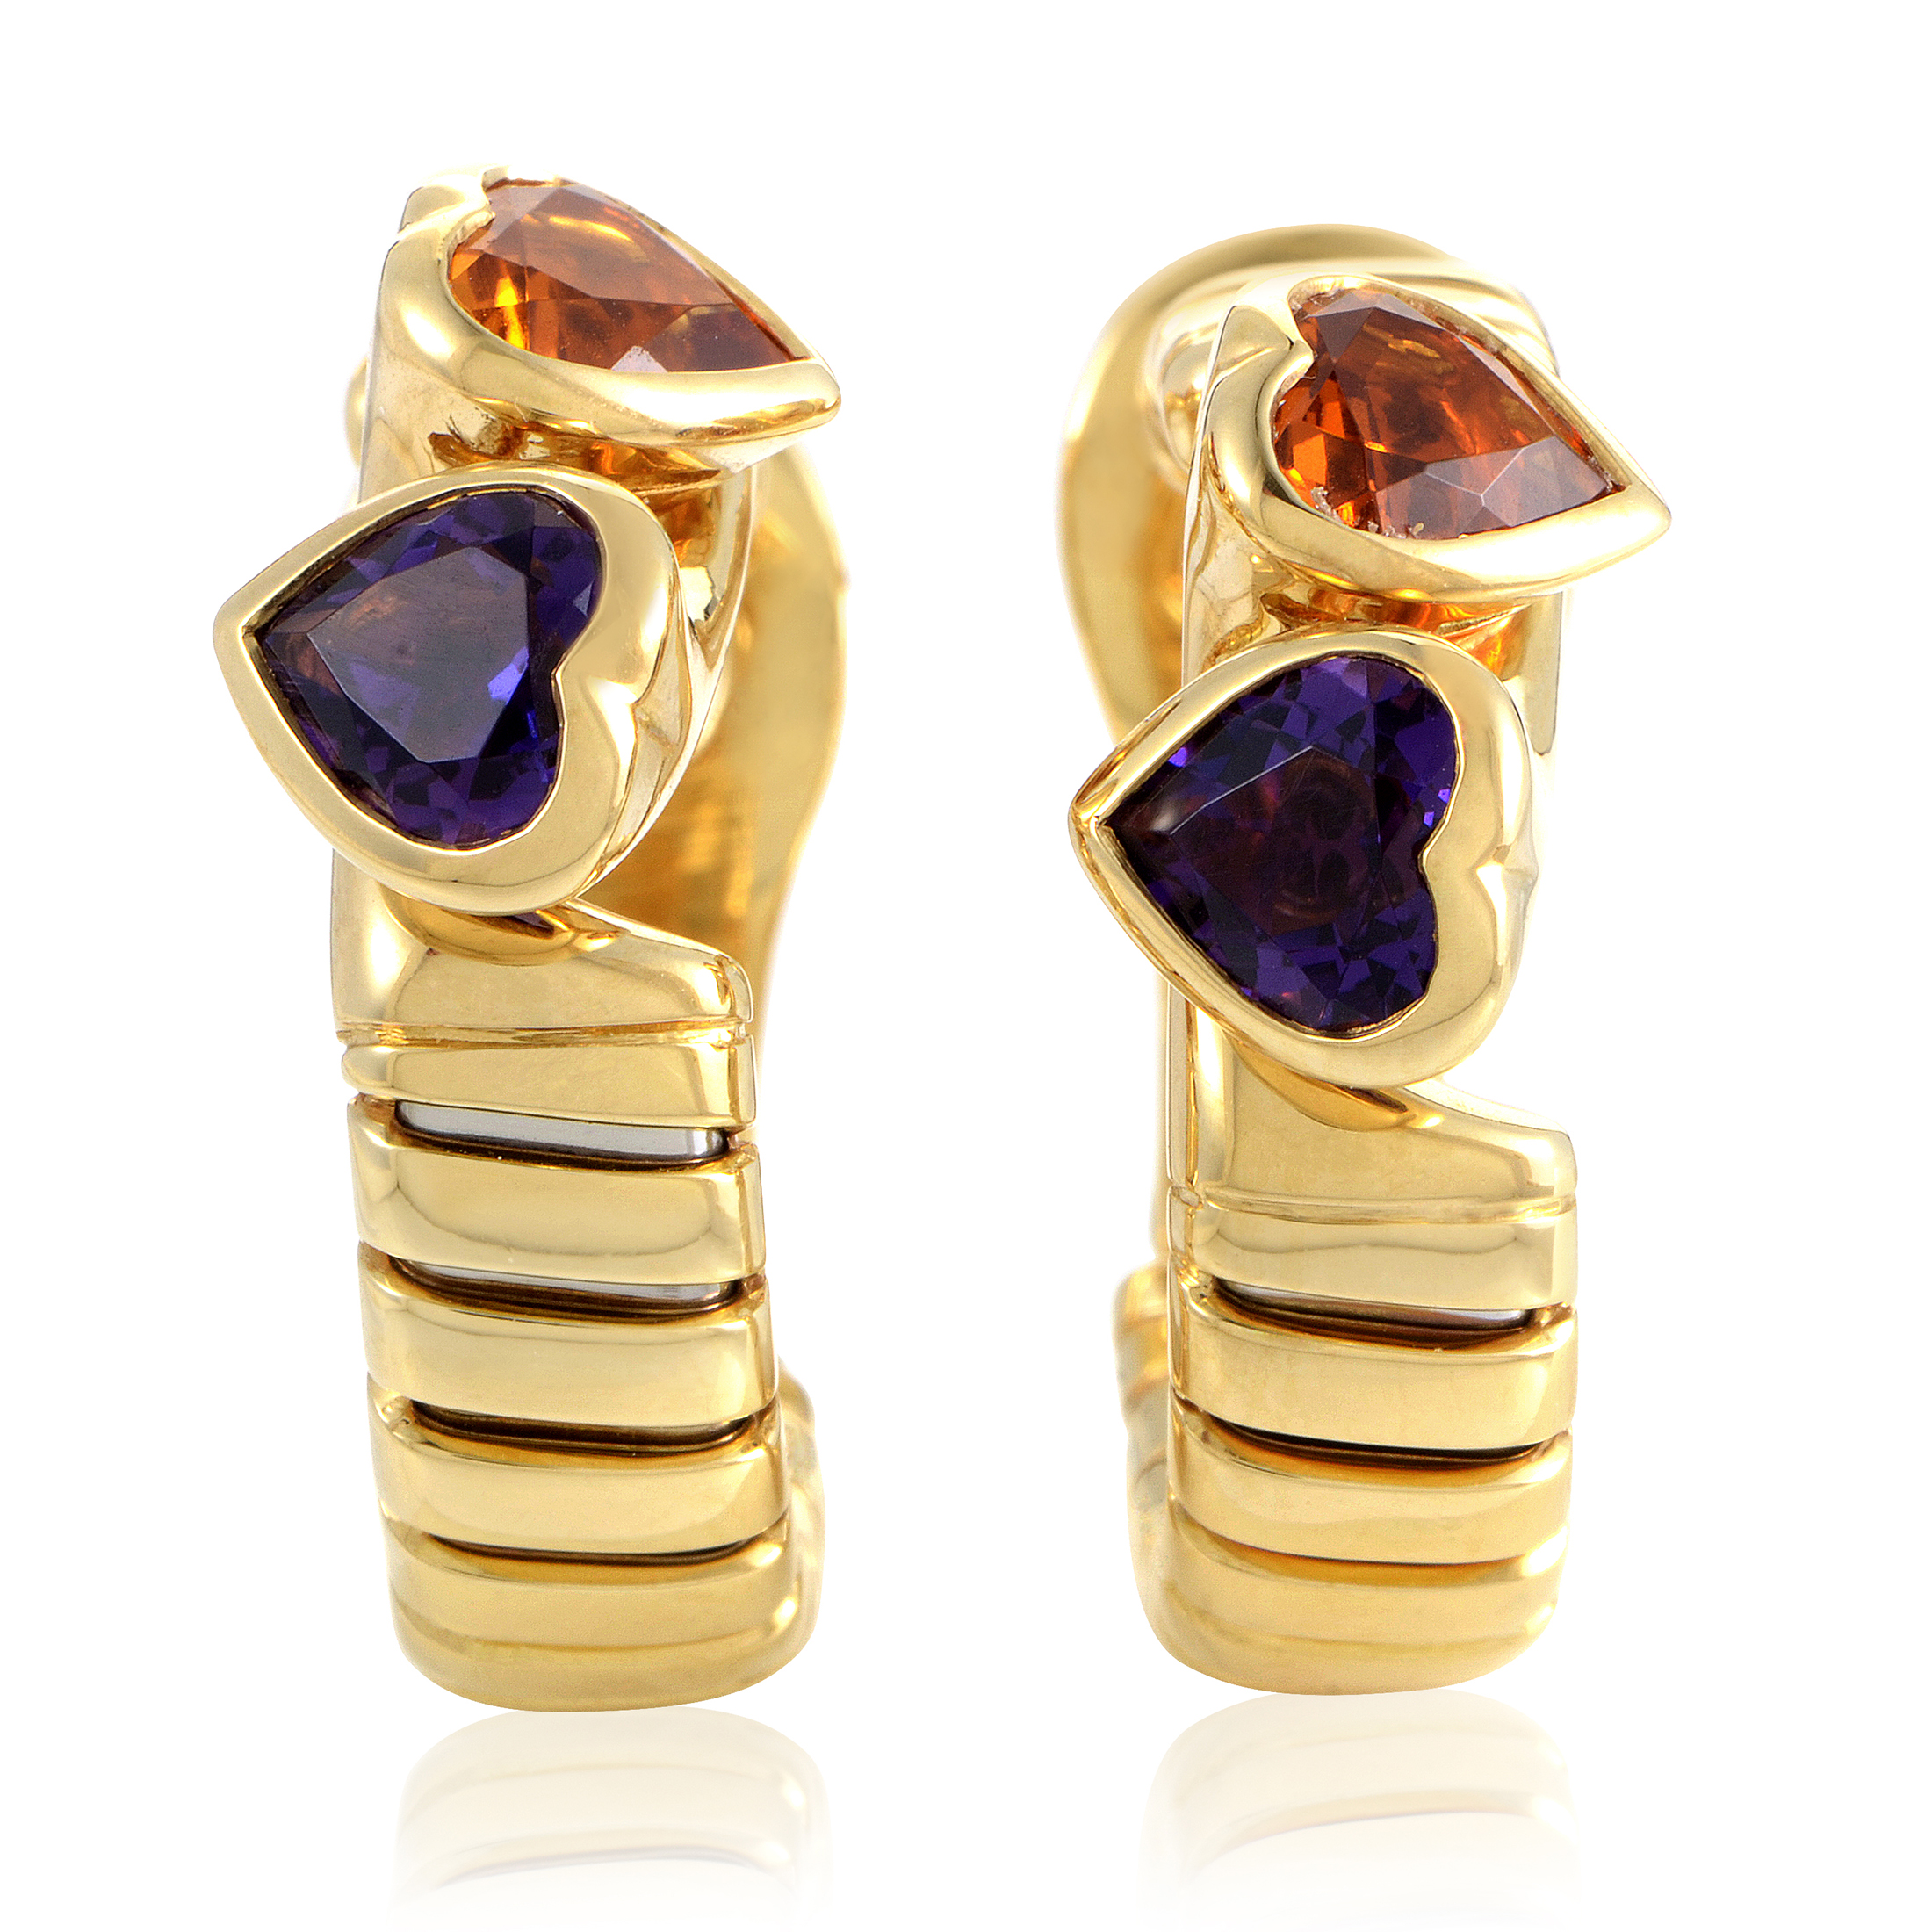 Bvlgari Tubogas Women's 18K Yellow Gold Amethyst & Citrine Heart Earrings